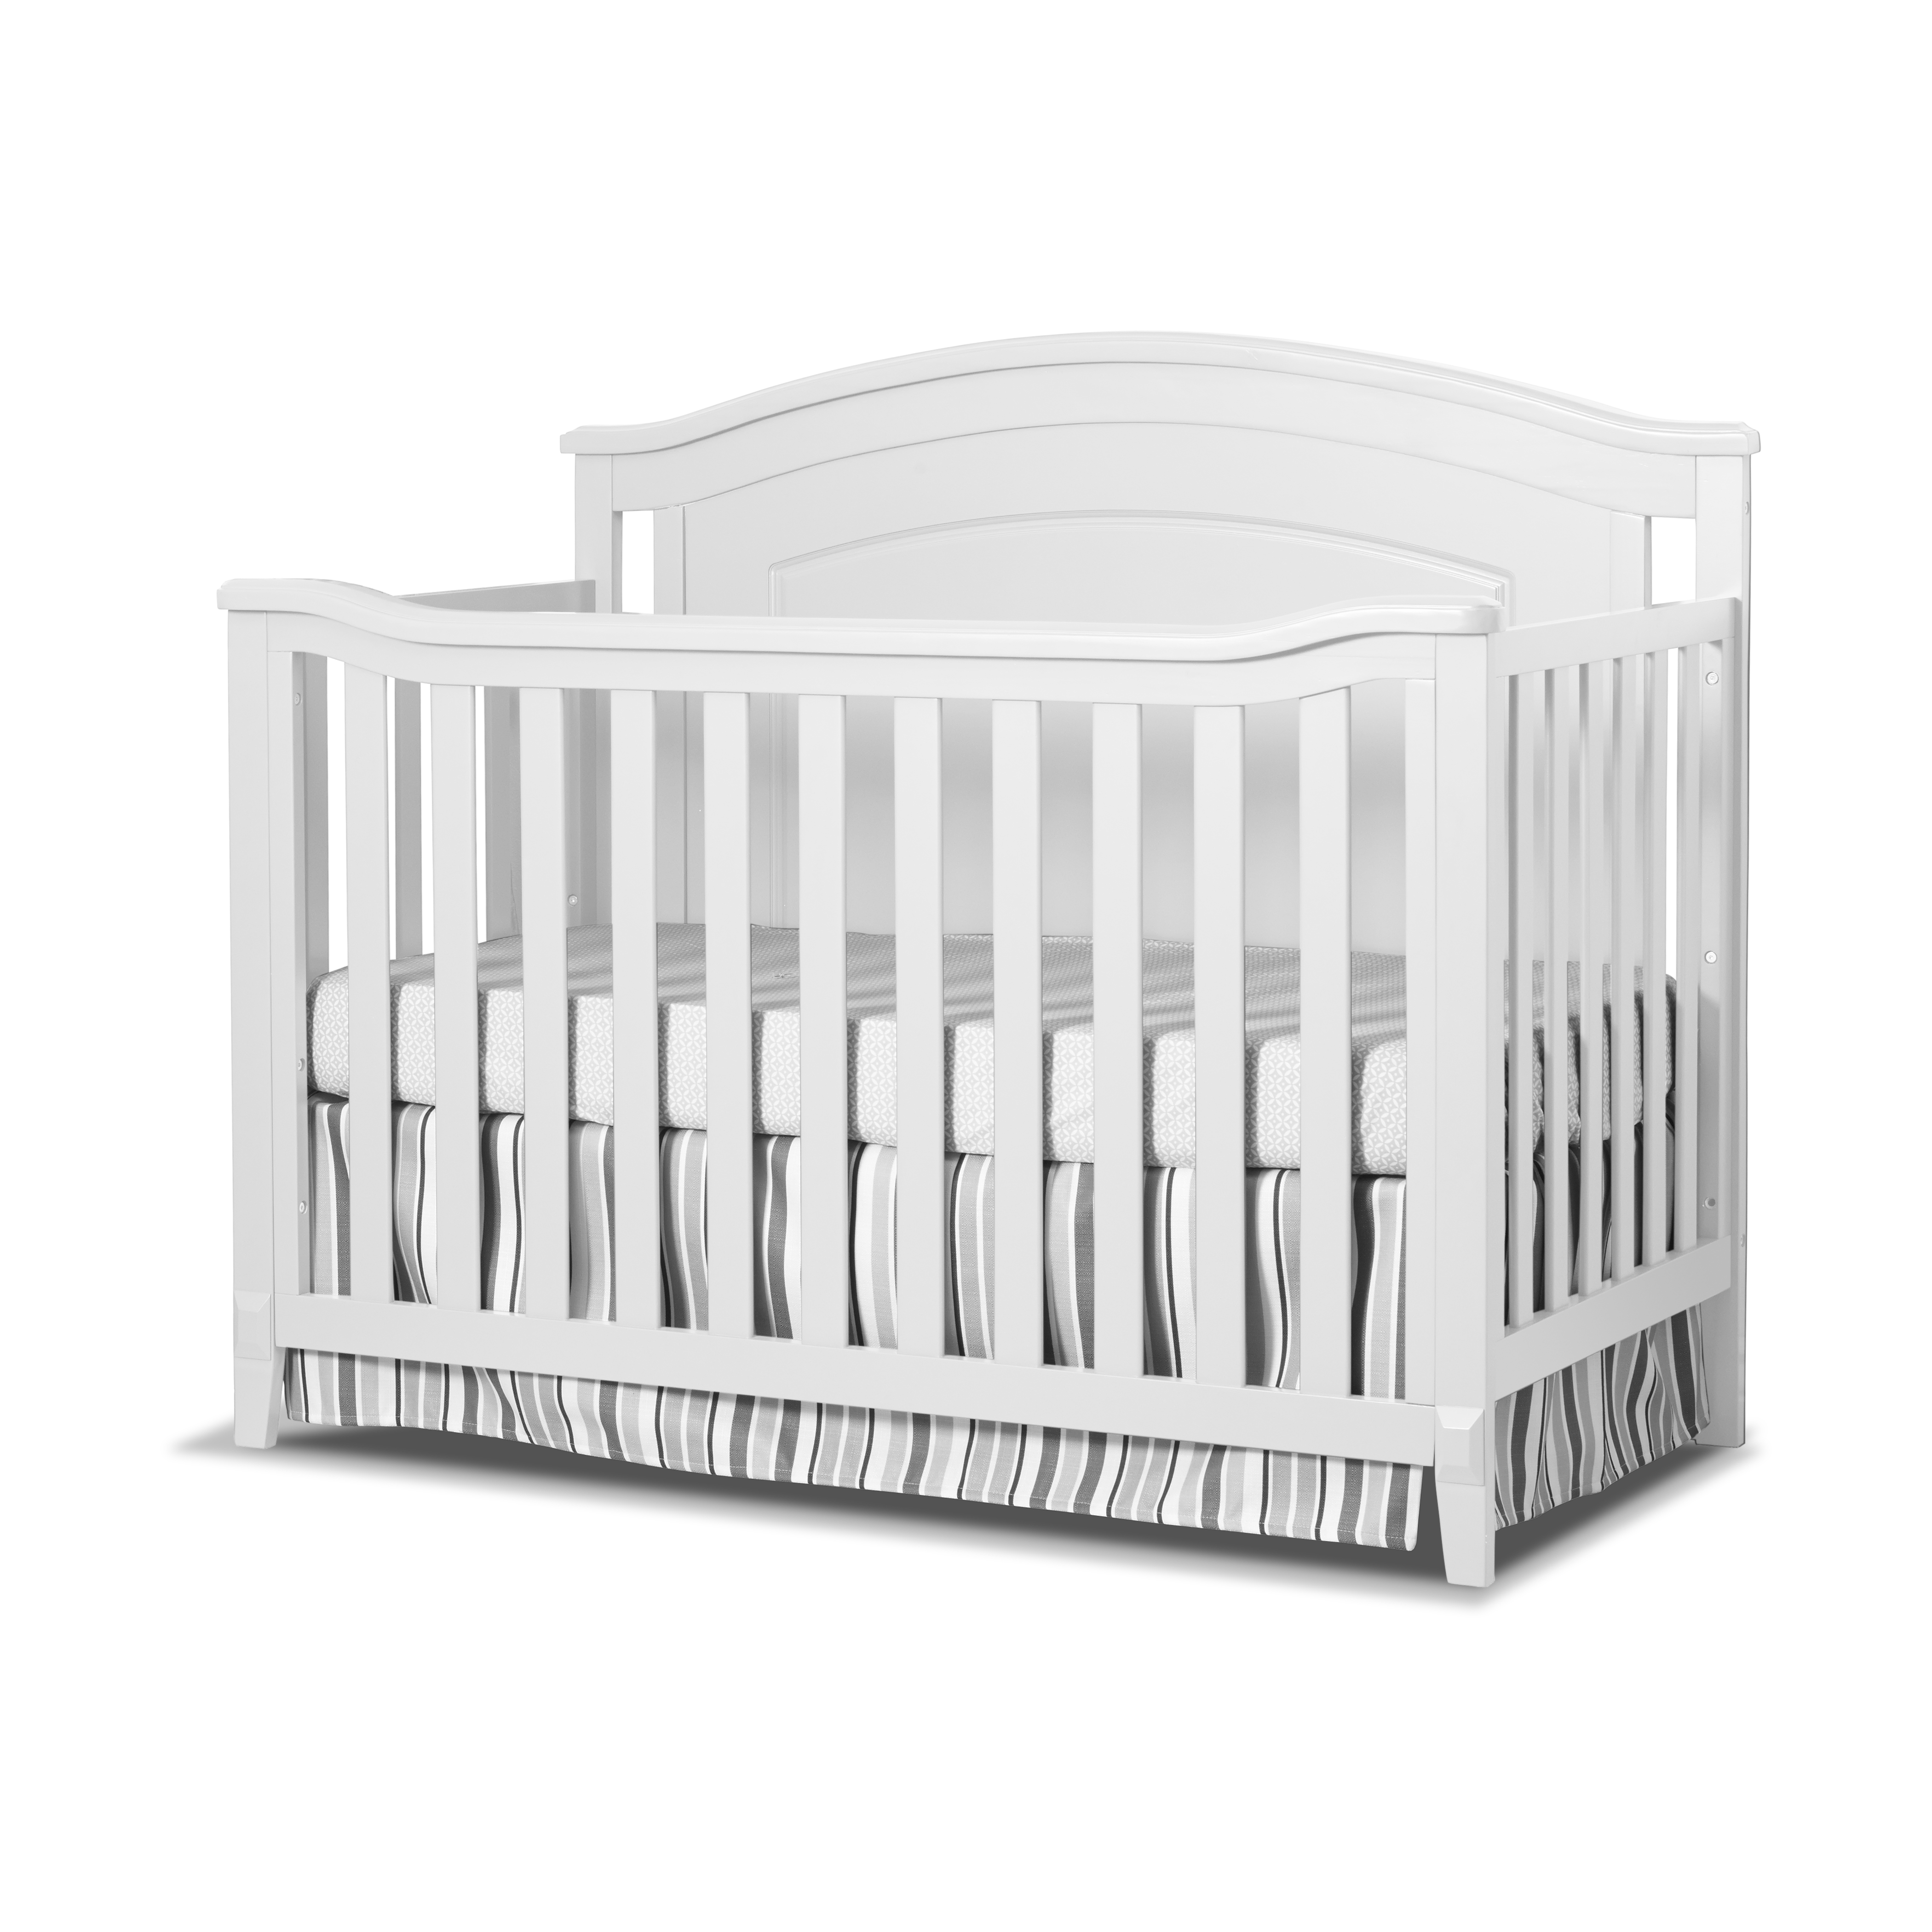 Sorelle Glendale 4 in 1 Convertible Crib, White